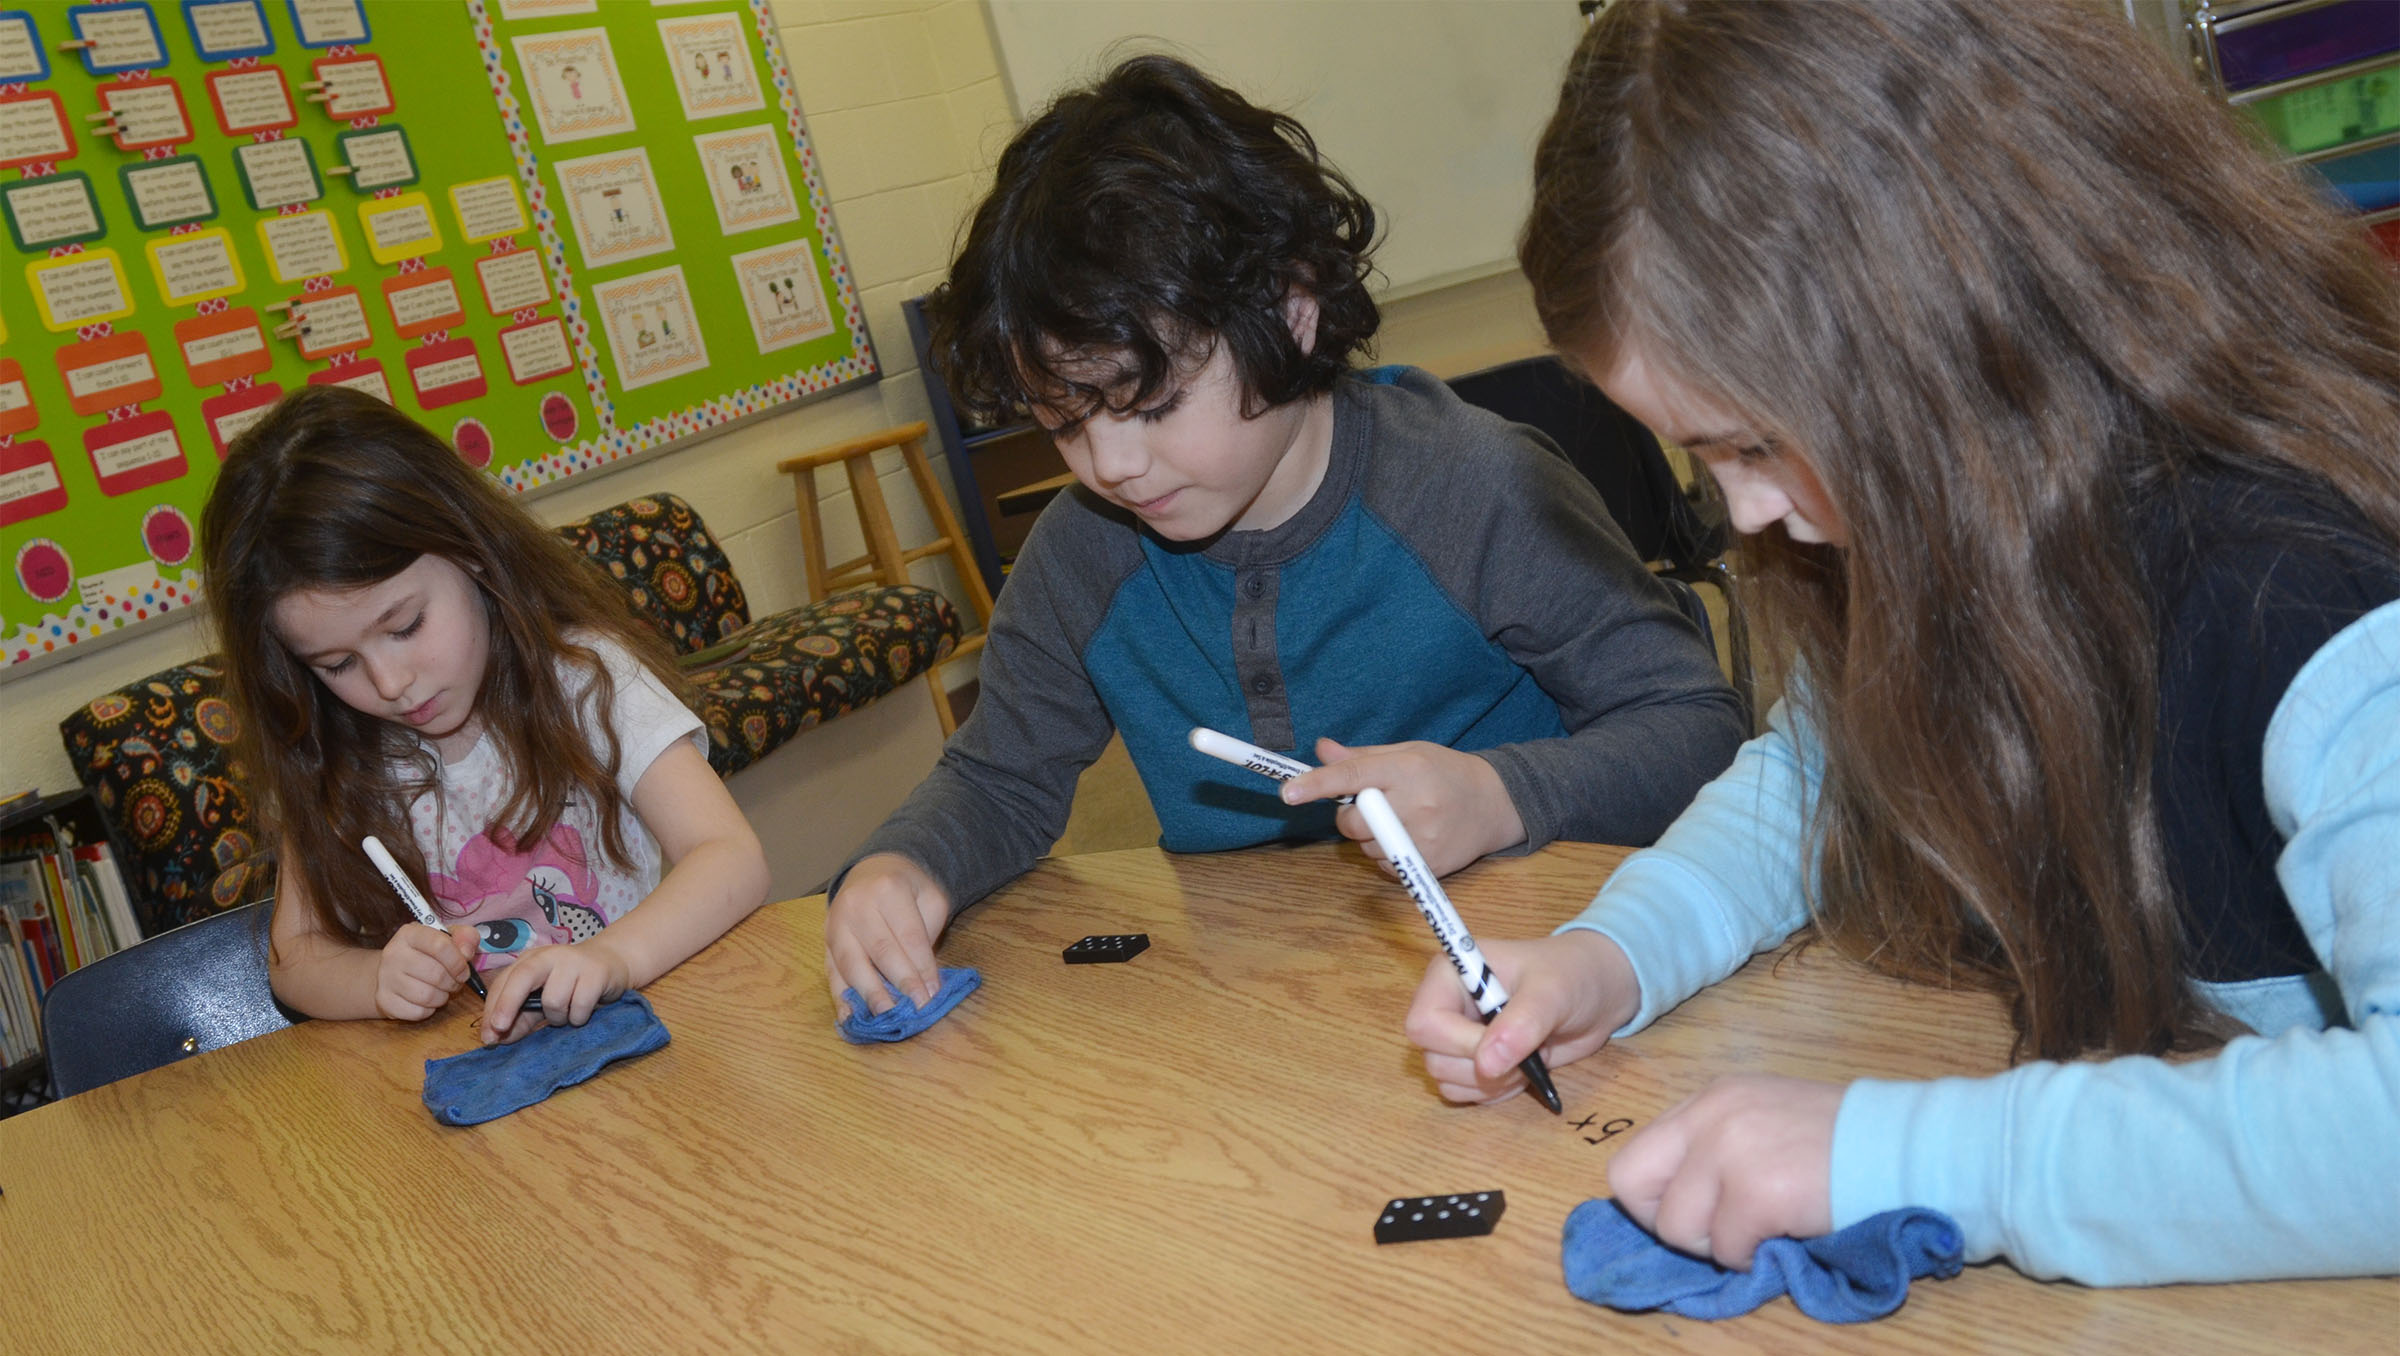 CES first-graders, from left, Giselle Moreno, Diego Aquino and Alyssa Farmer practice their math skills by playing a Dominos game.